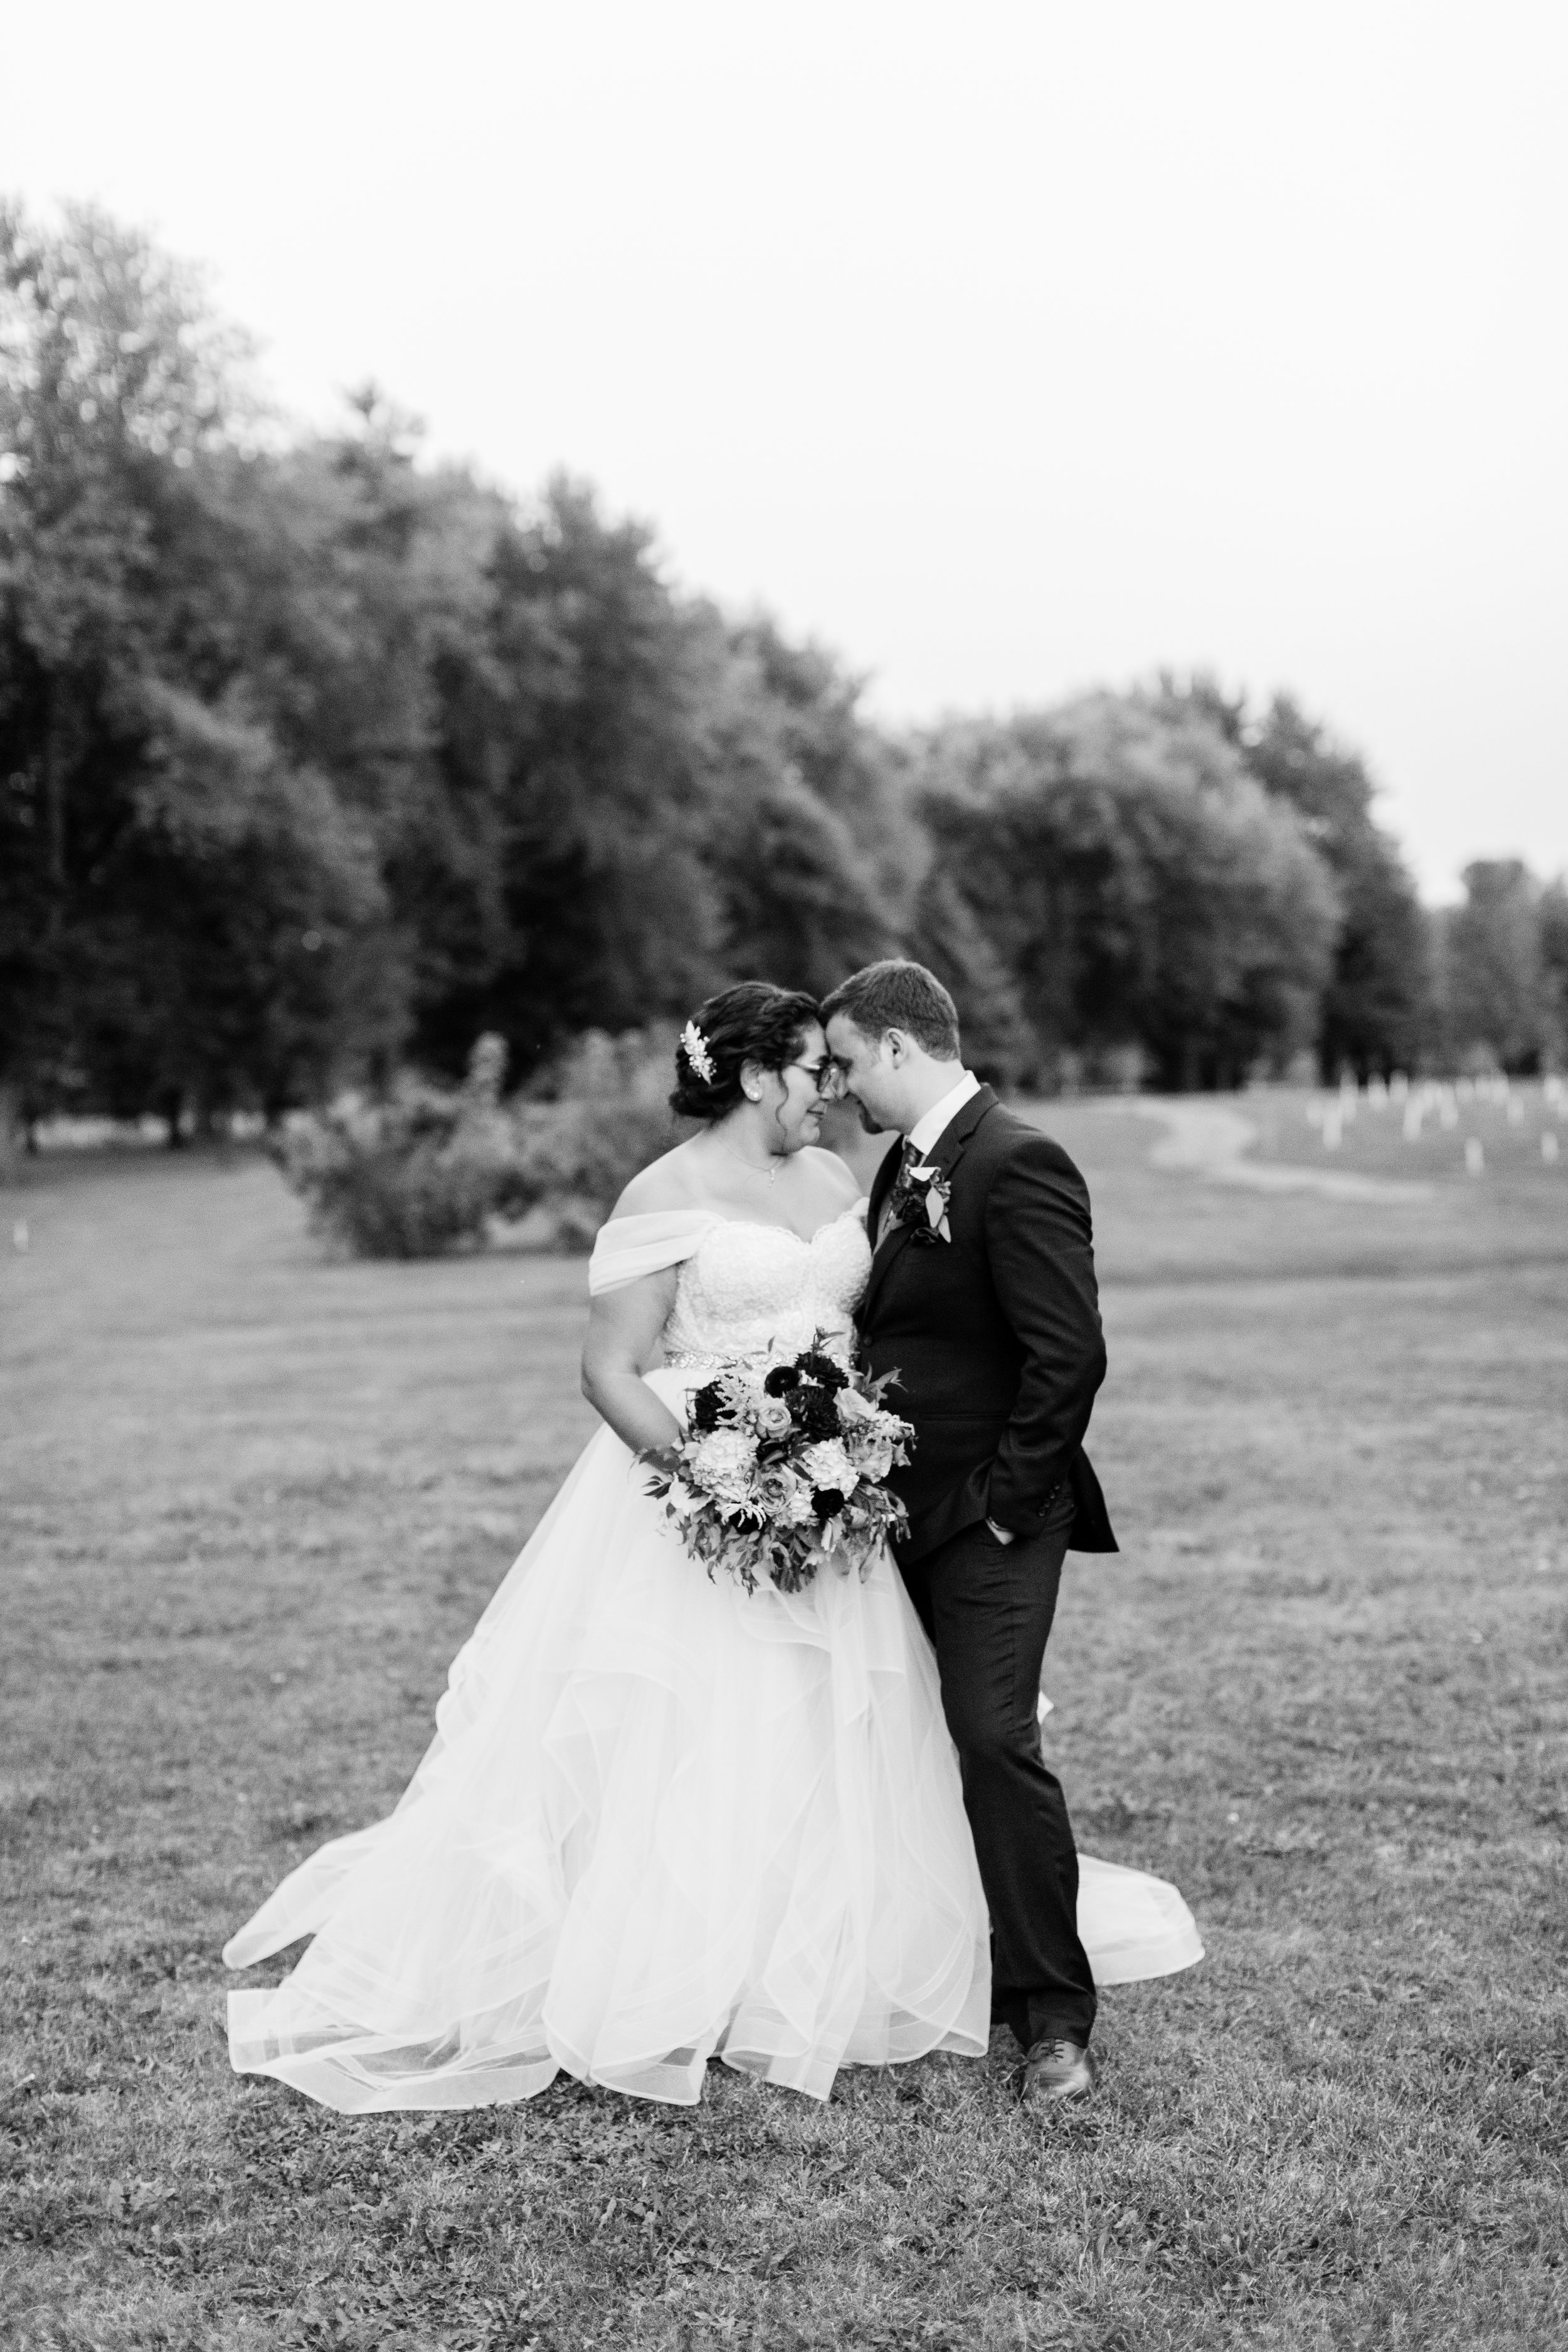 Stone Arch at Riverview Gardens-Appleton WI-Wedding-Photos-Fran and Andrew-12.jpg